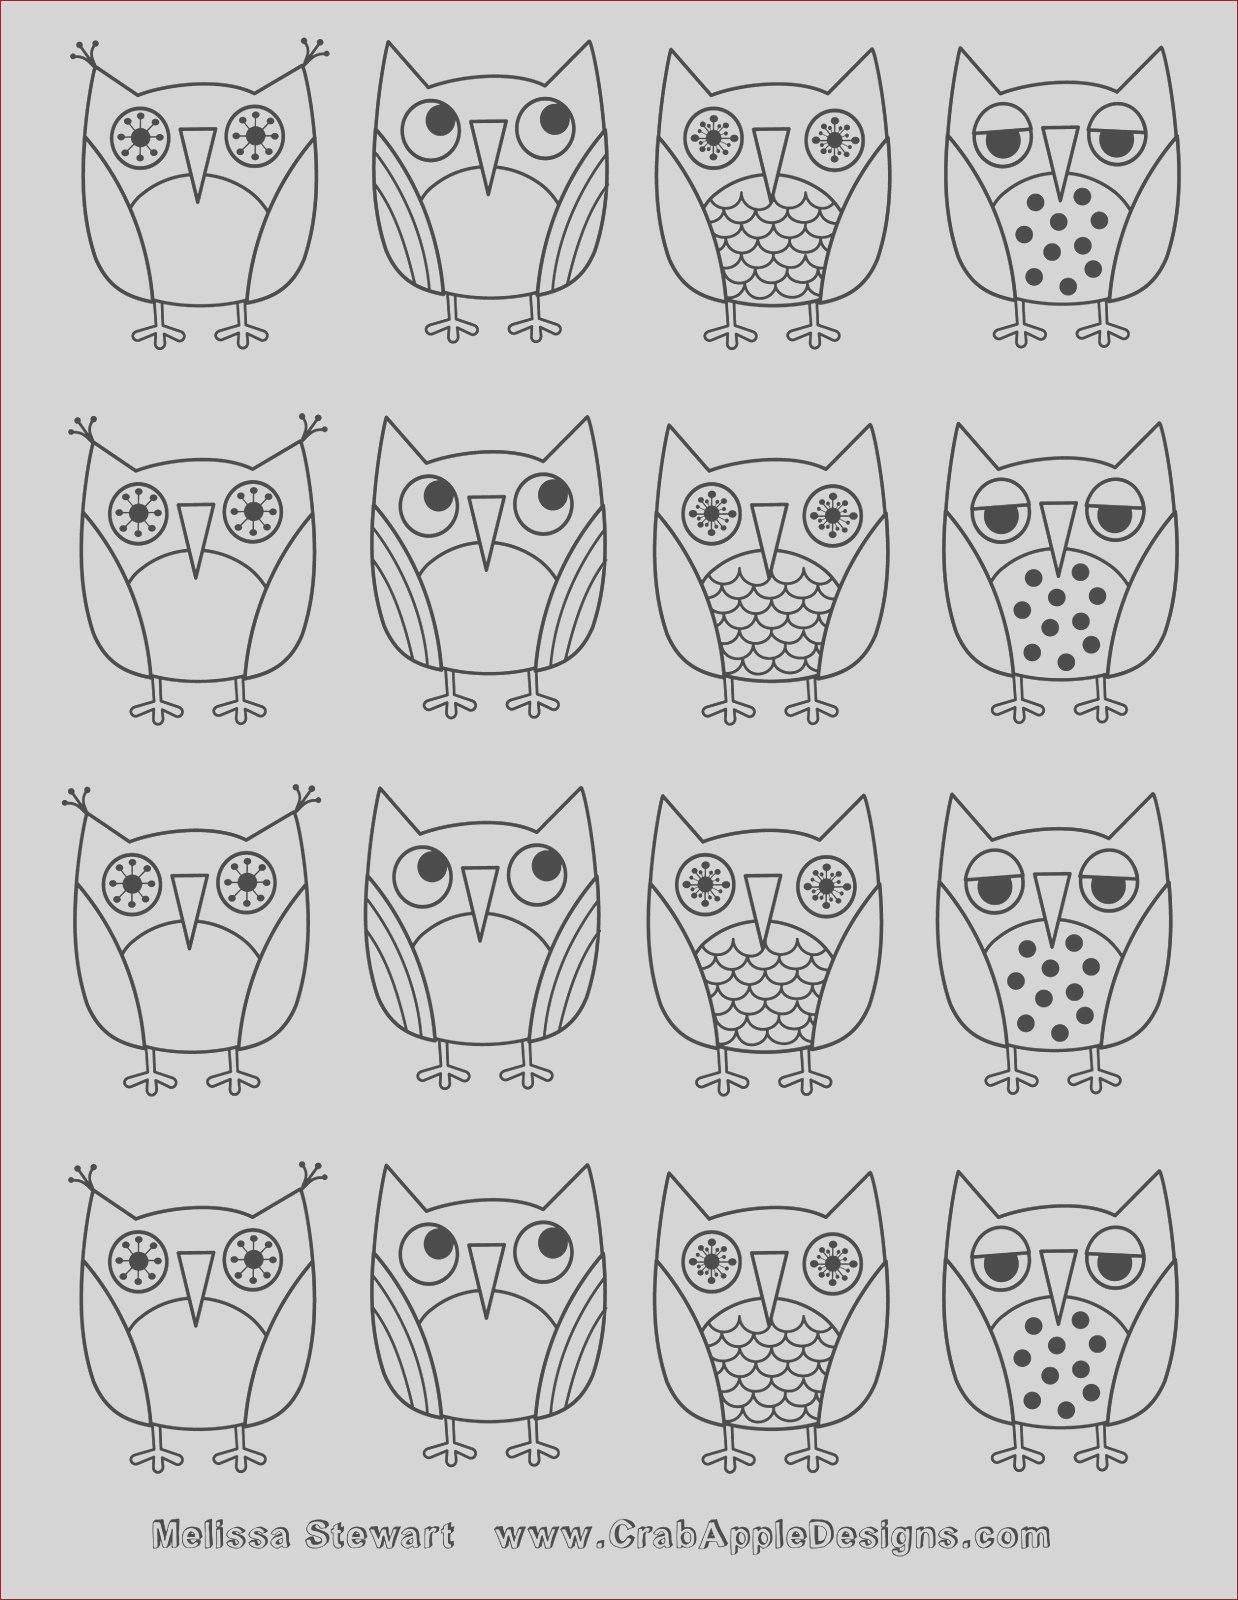 owls coloring page day 7 of 7